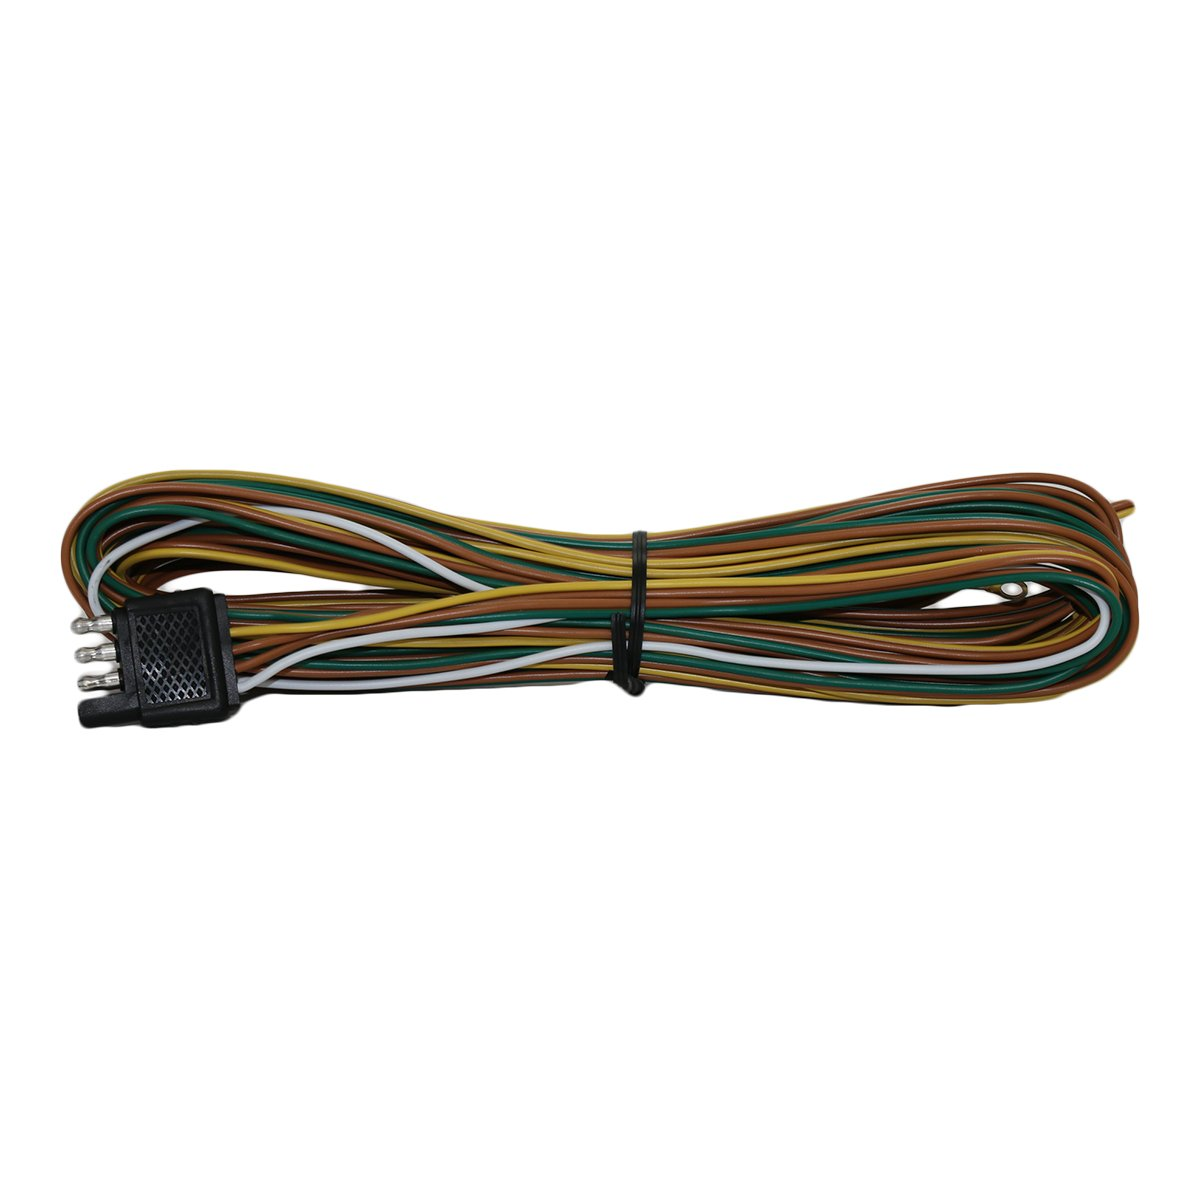 Wishbone Style Trailer Wiring Harness With 4 Flat Utility Wire Connector 25 Ft Long 3 Ground Sports Outdoors